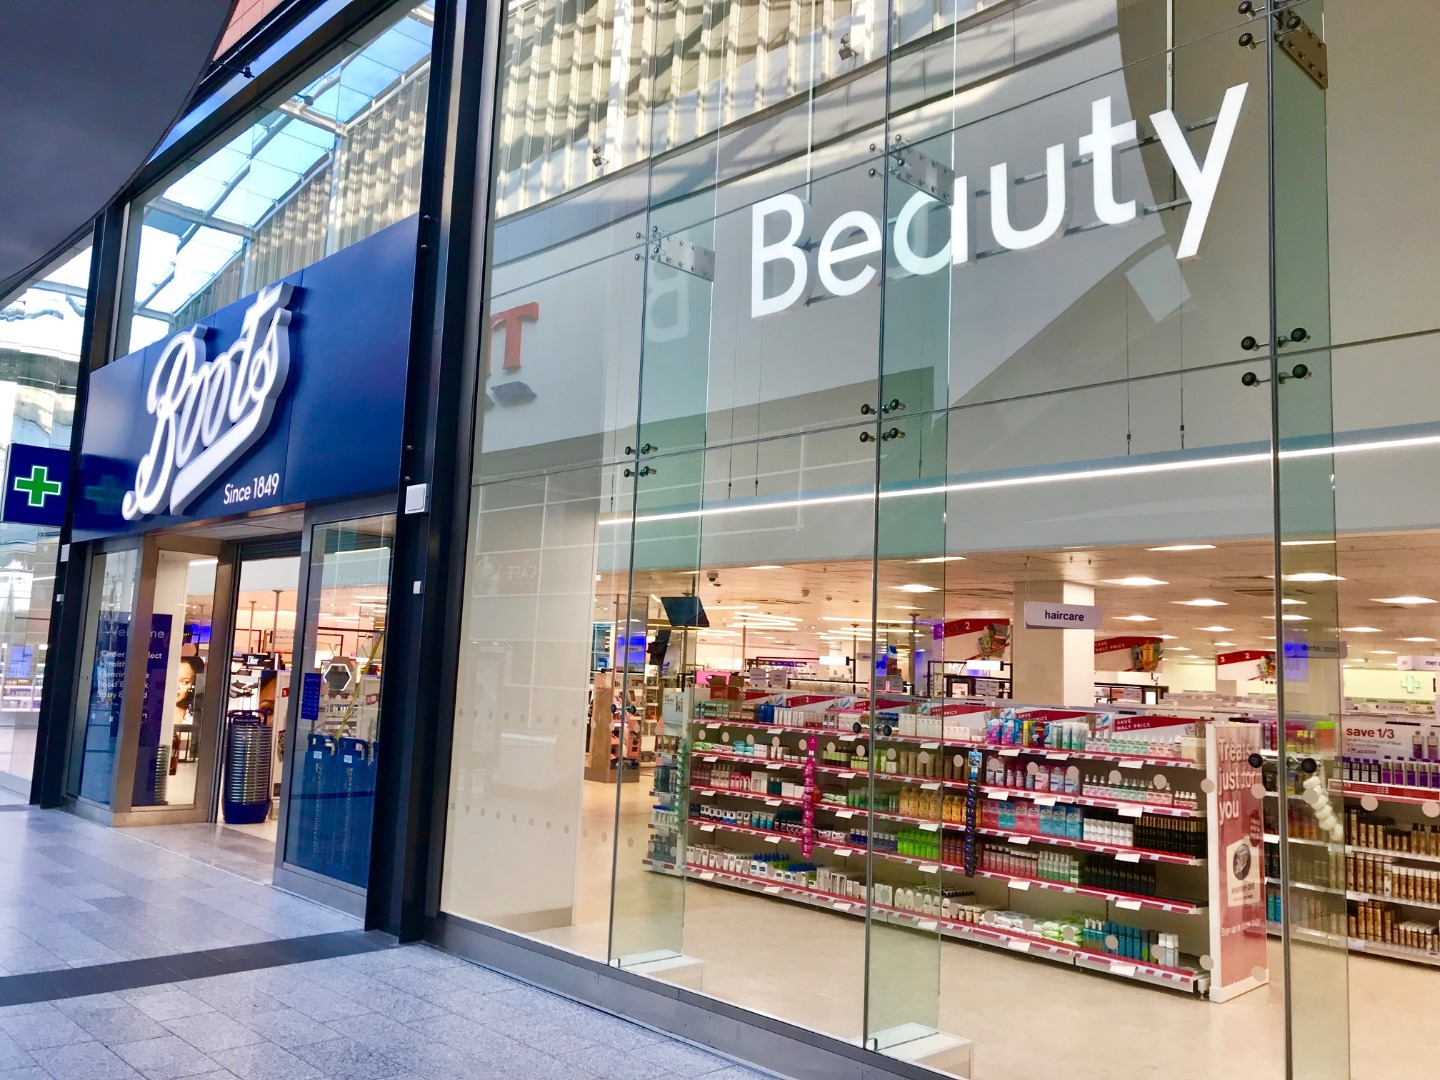 Boots UK - About Boots UK